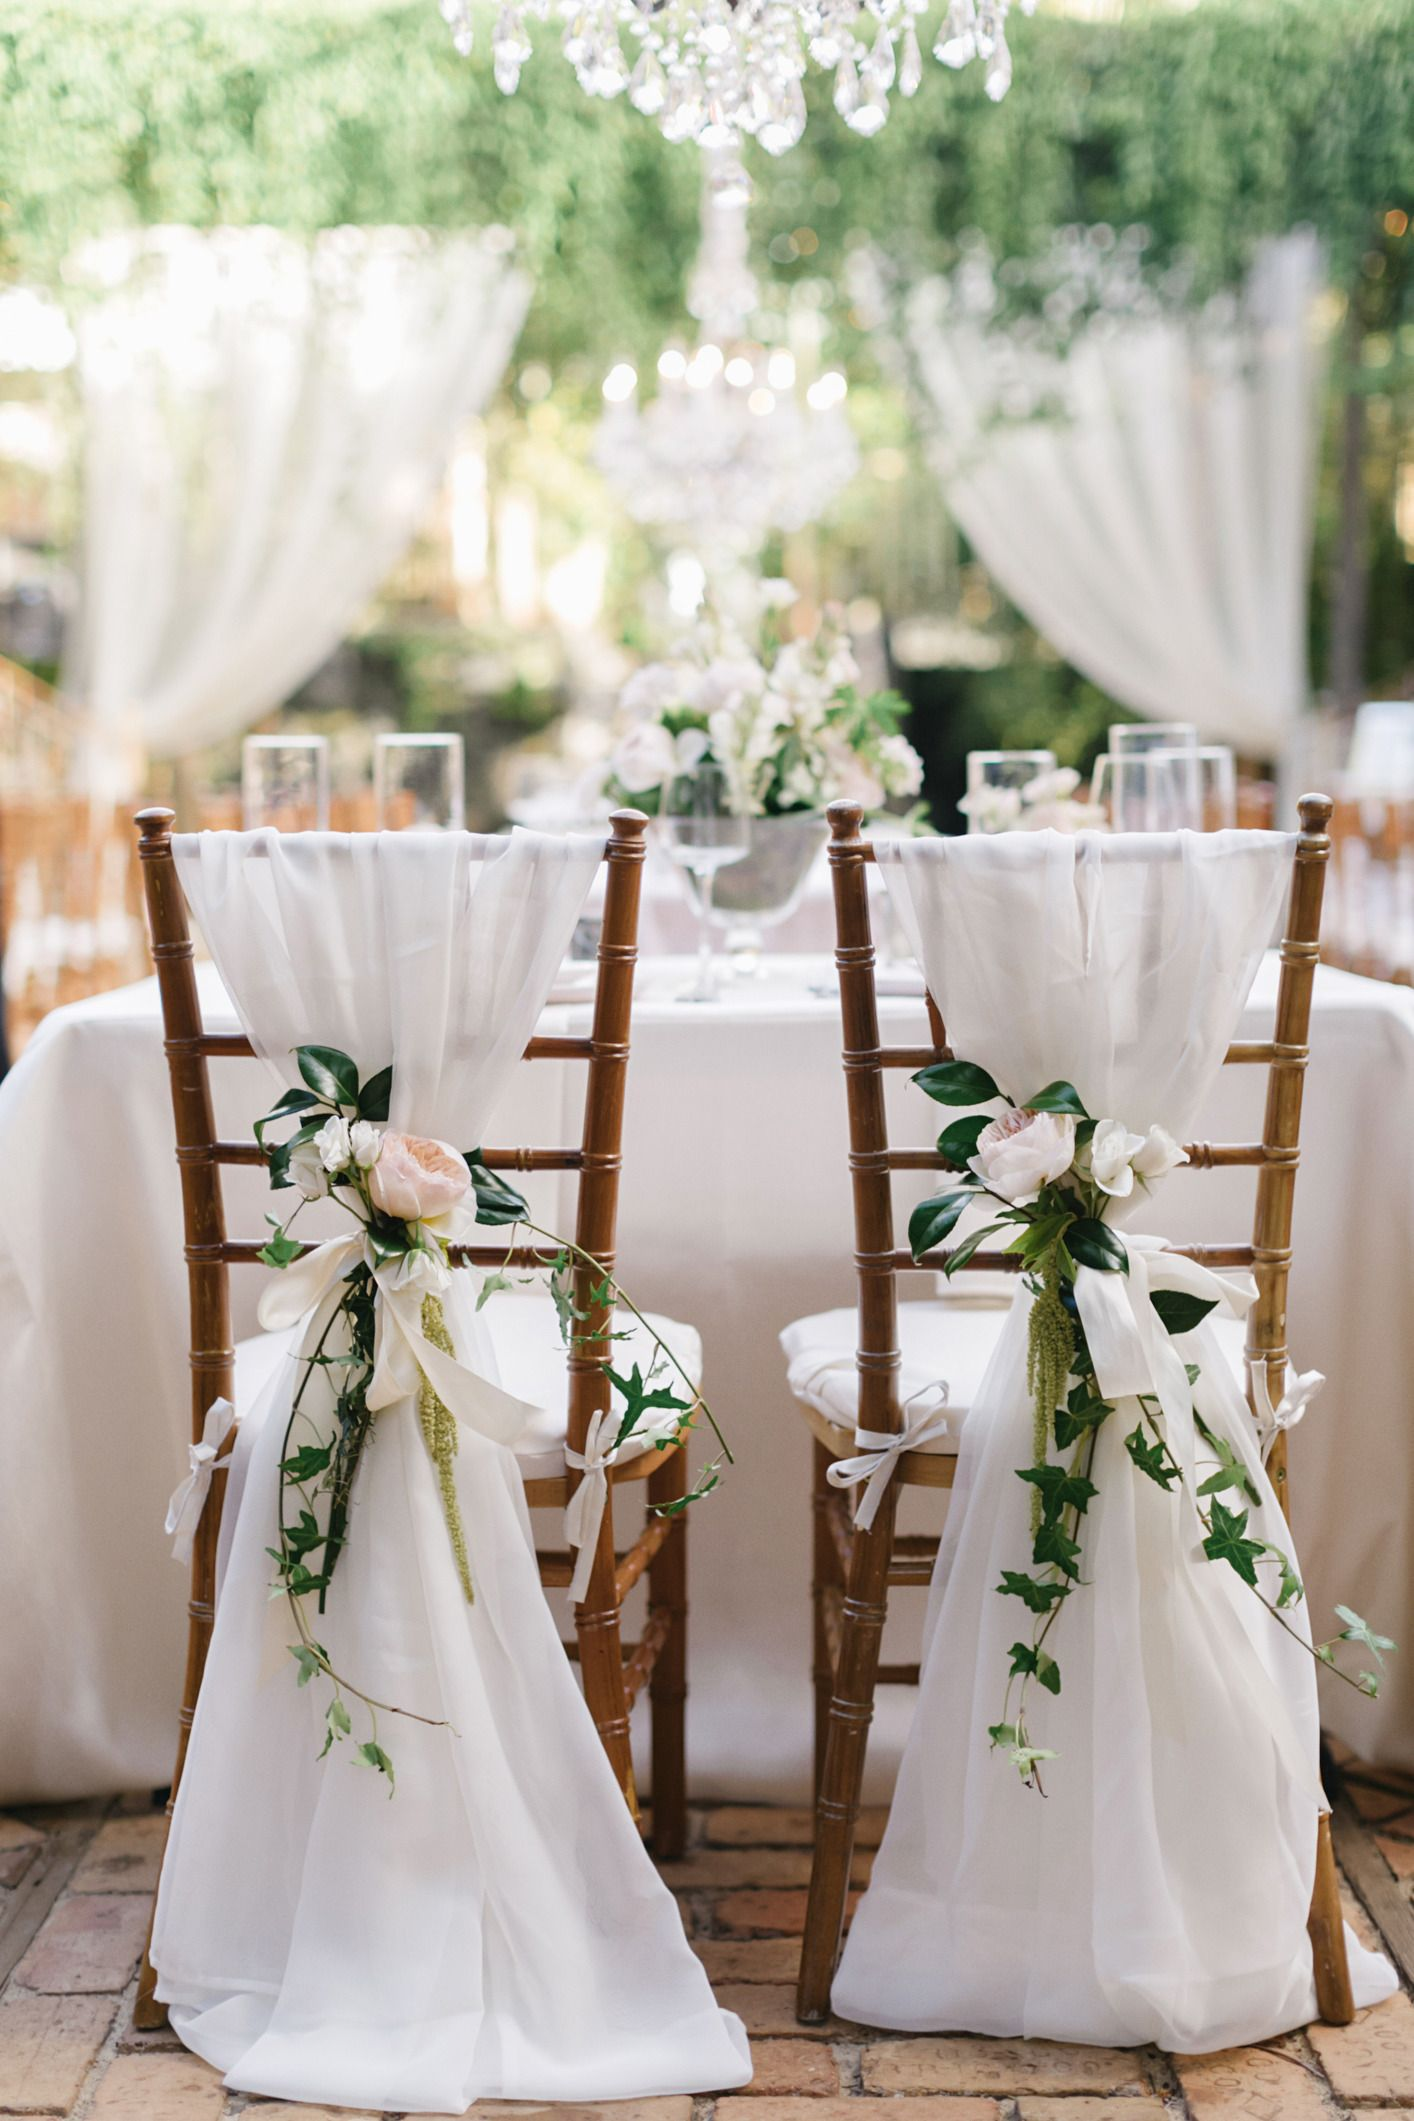 Wedding tent decoration images  Vintage Elegance at Haiku Mill  Destination weddings Chairs and